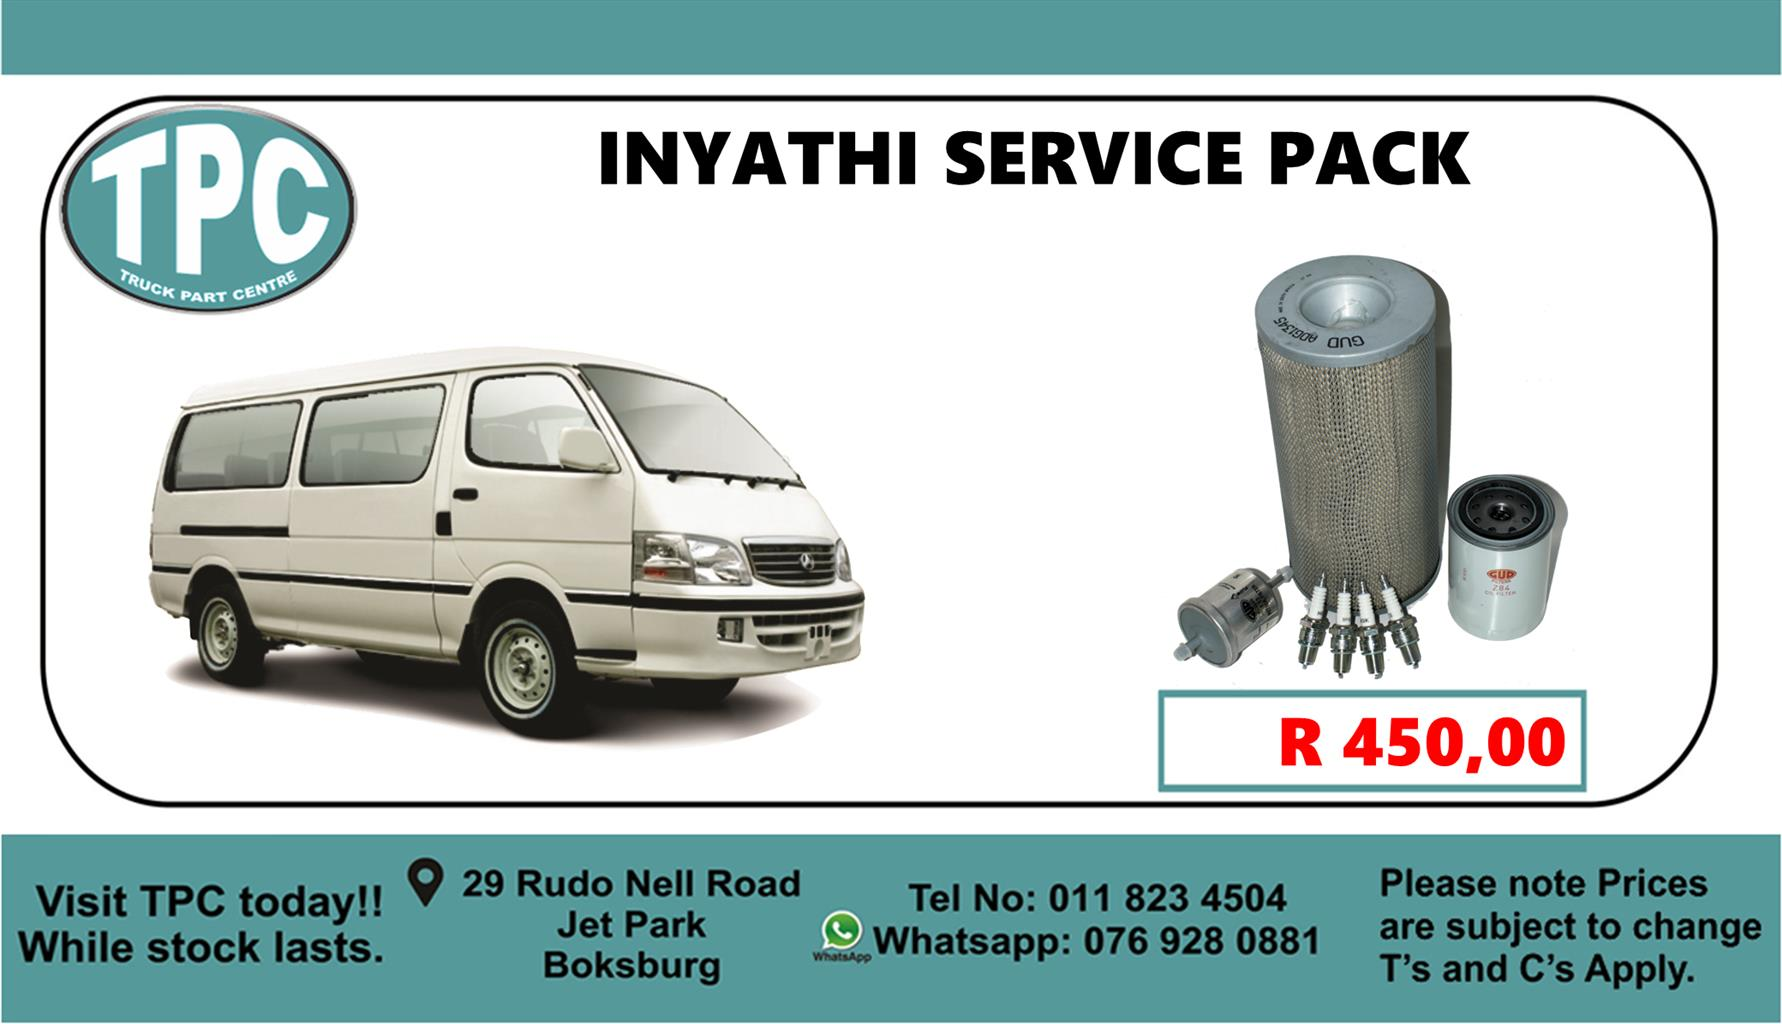 Inyathi Service Pack - For Sale at TPC